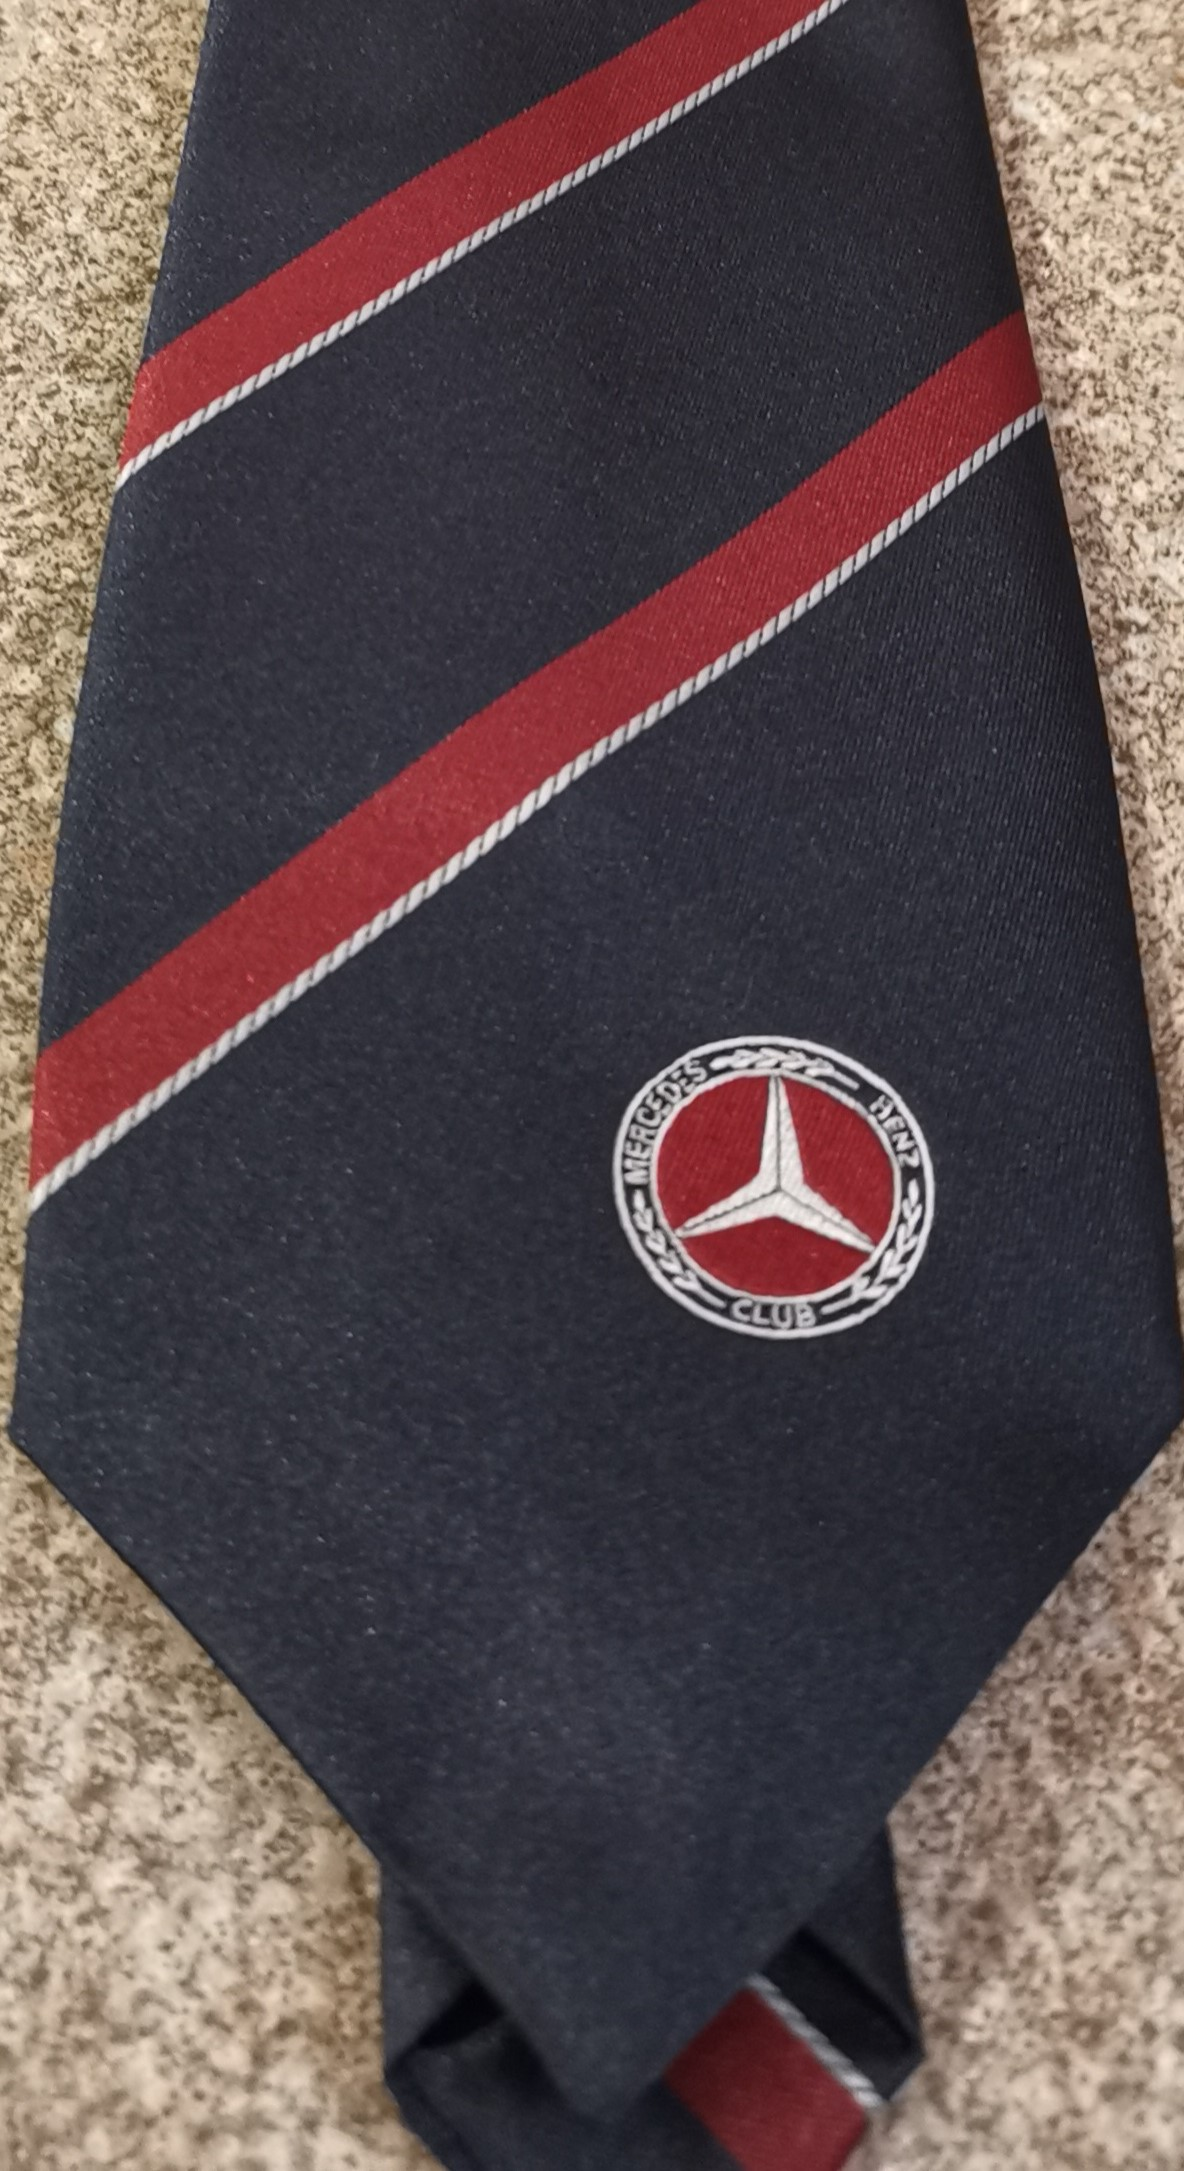 Mercedes-Benz Club Tie